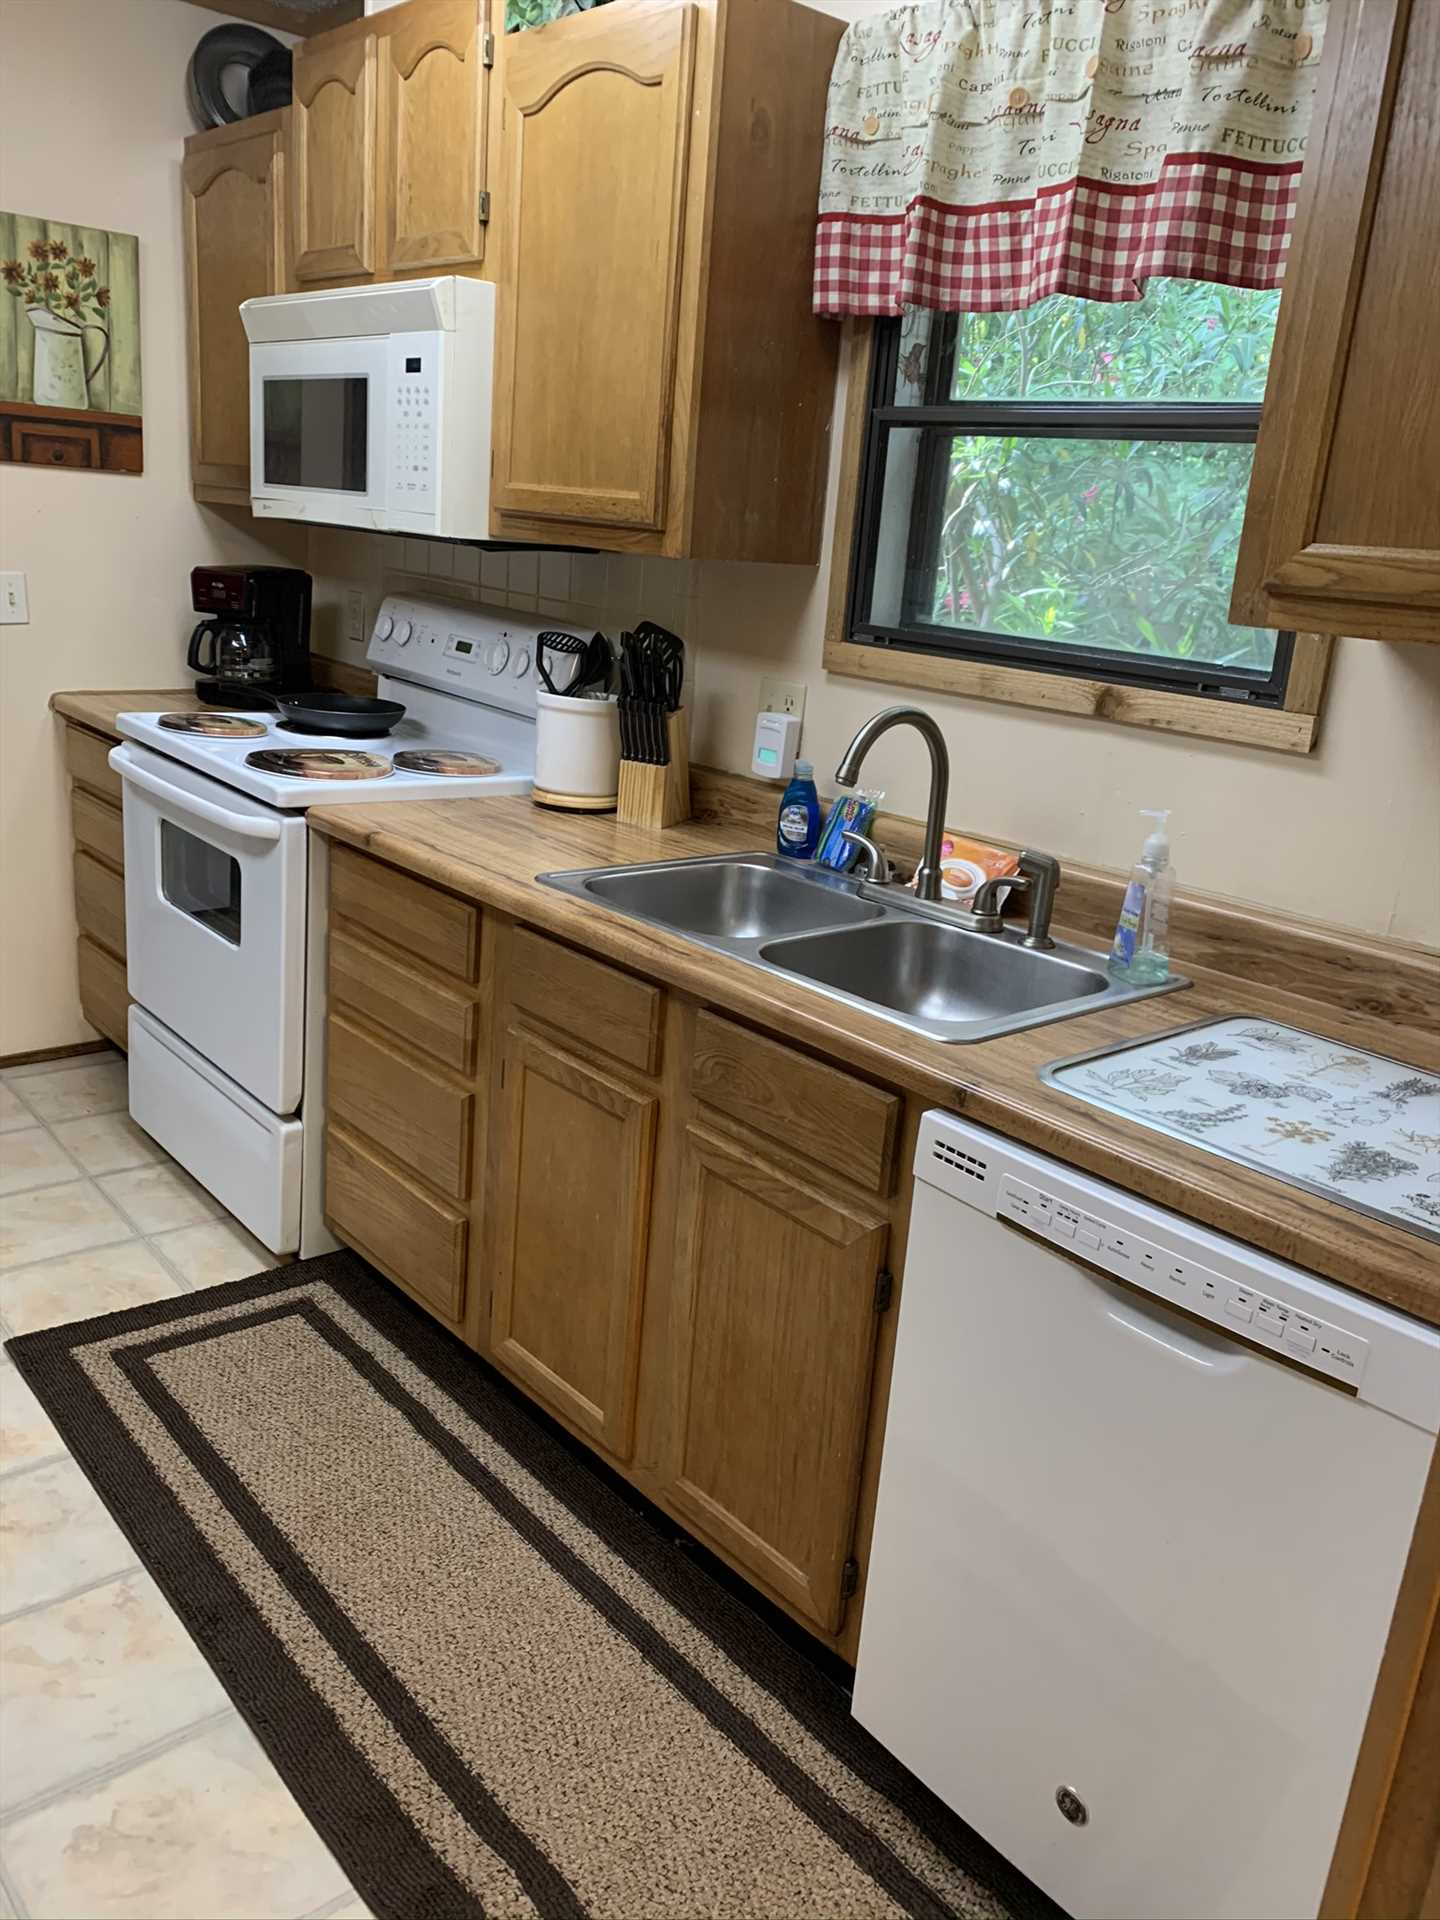 The kitchen at the Lodge is decked out with everything your resident chefs will need, and all will be served in comfort at the dining and gaming tables nearby.